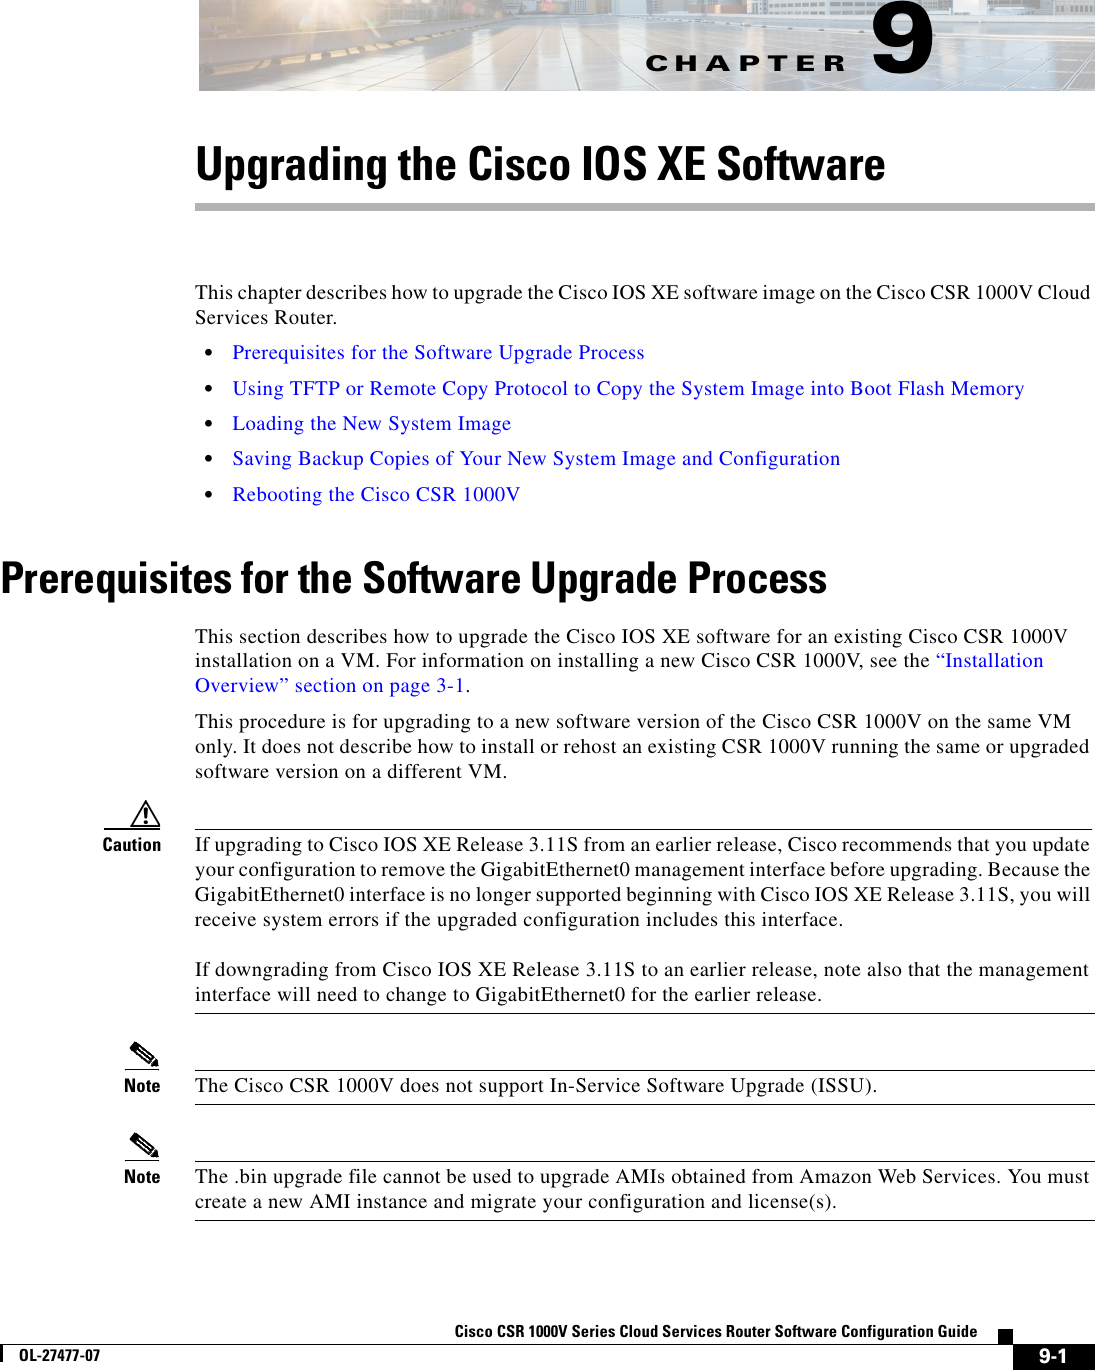 Cisco Systems Csr 1000V Users Manual Series Cloud Services